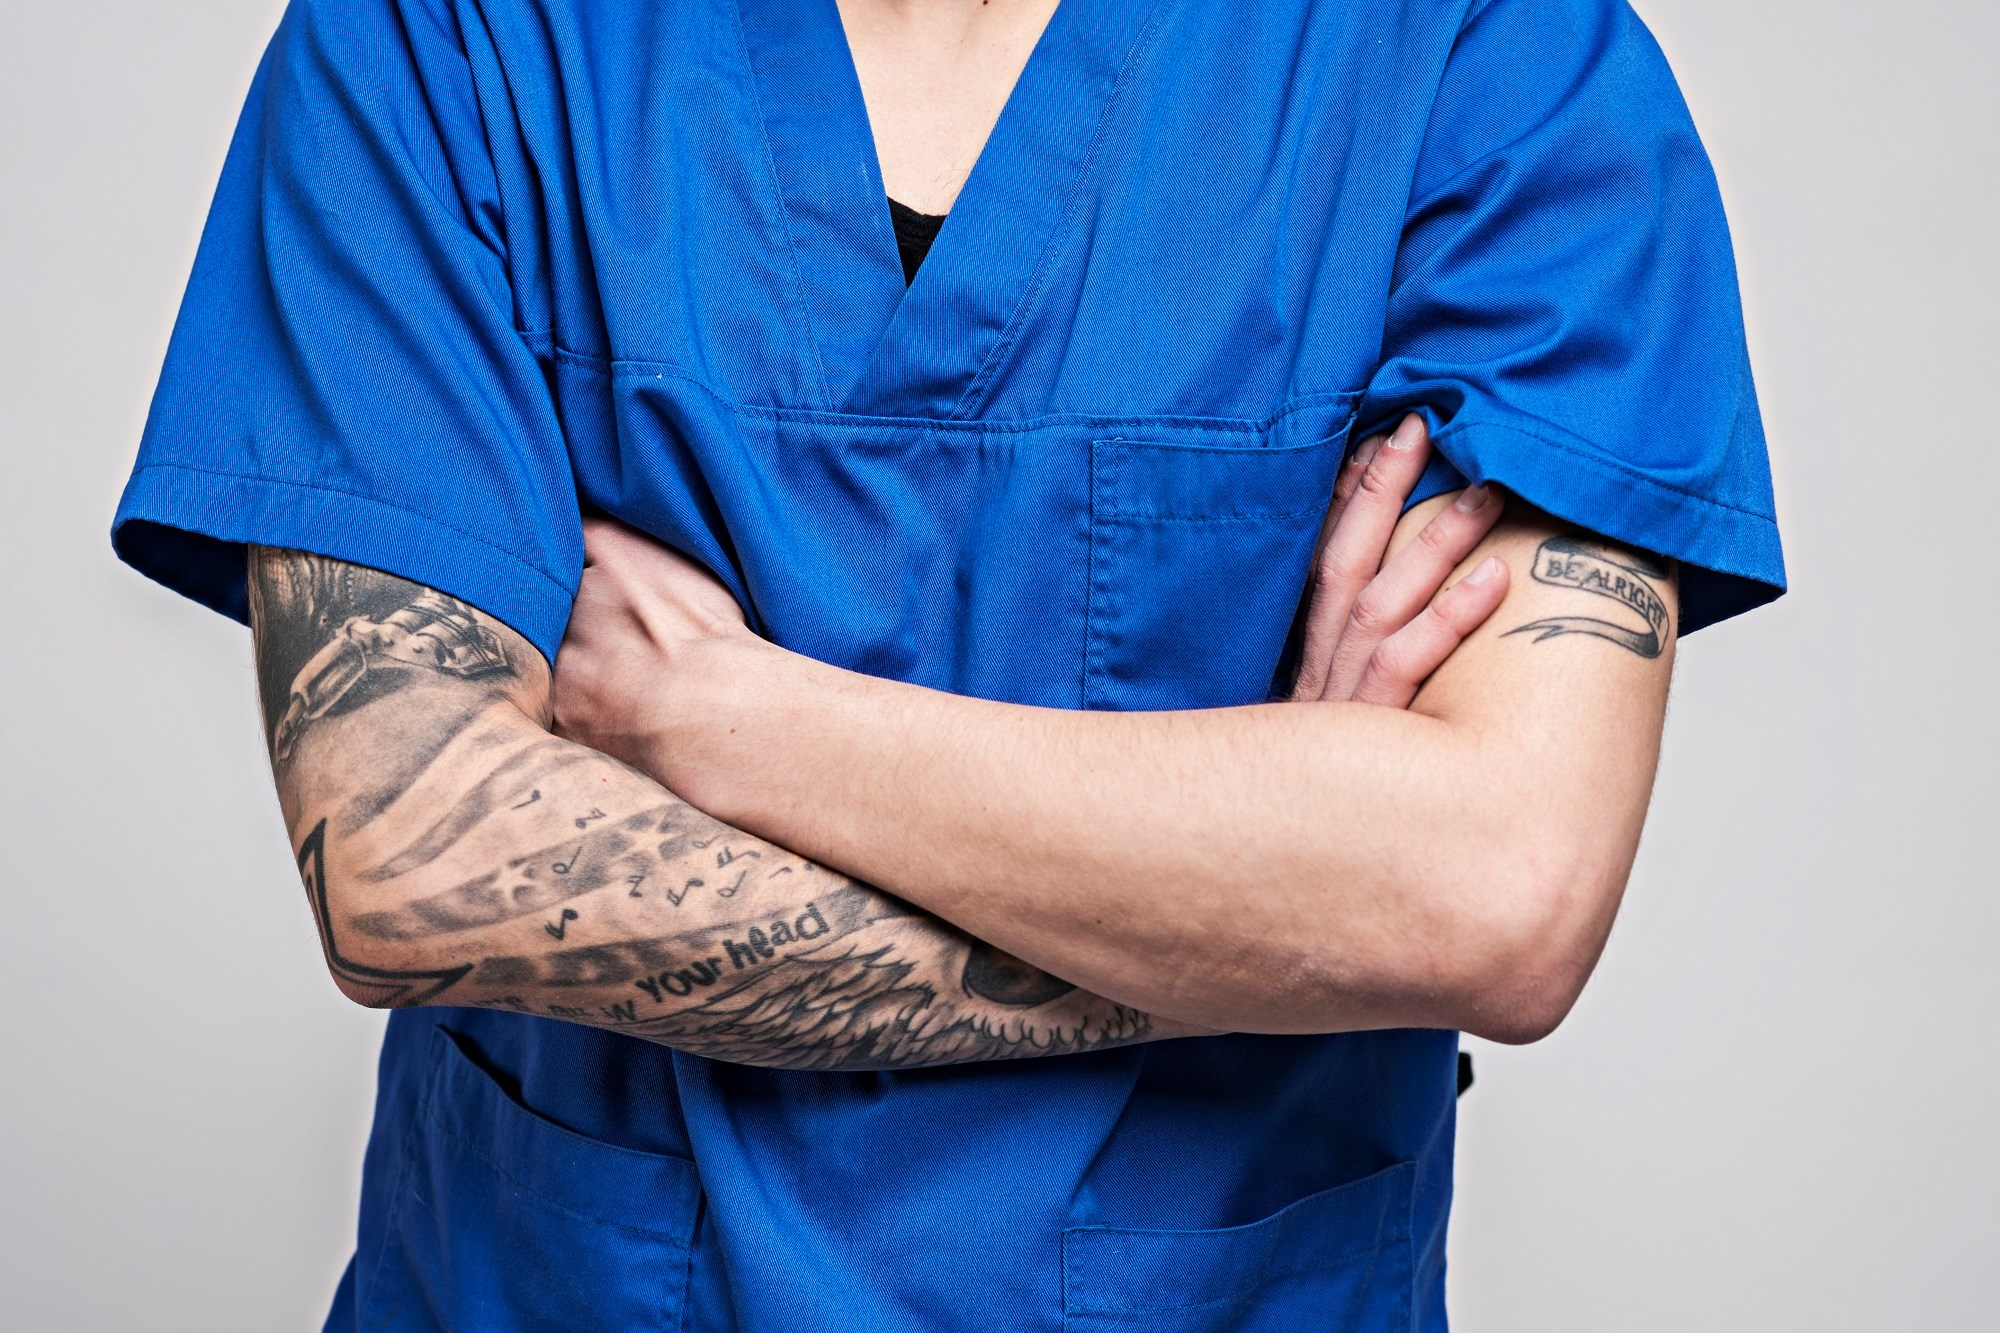 Patients do not appear to mind if doctors have tattoos or piercings.